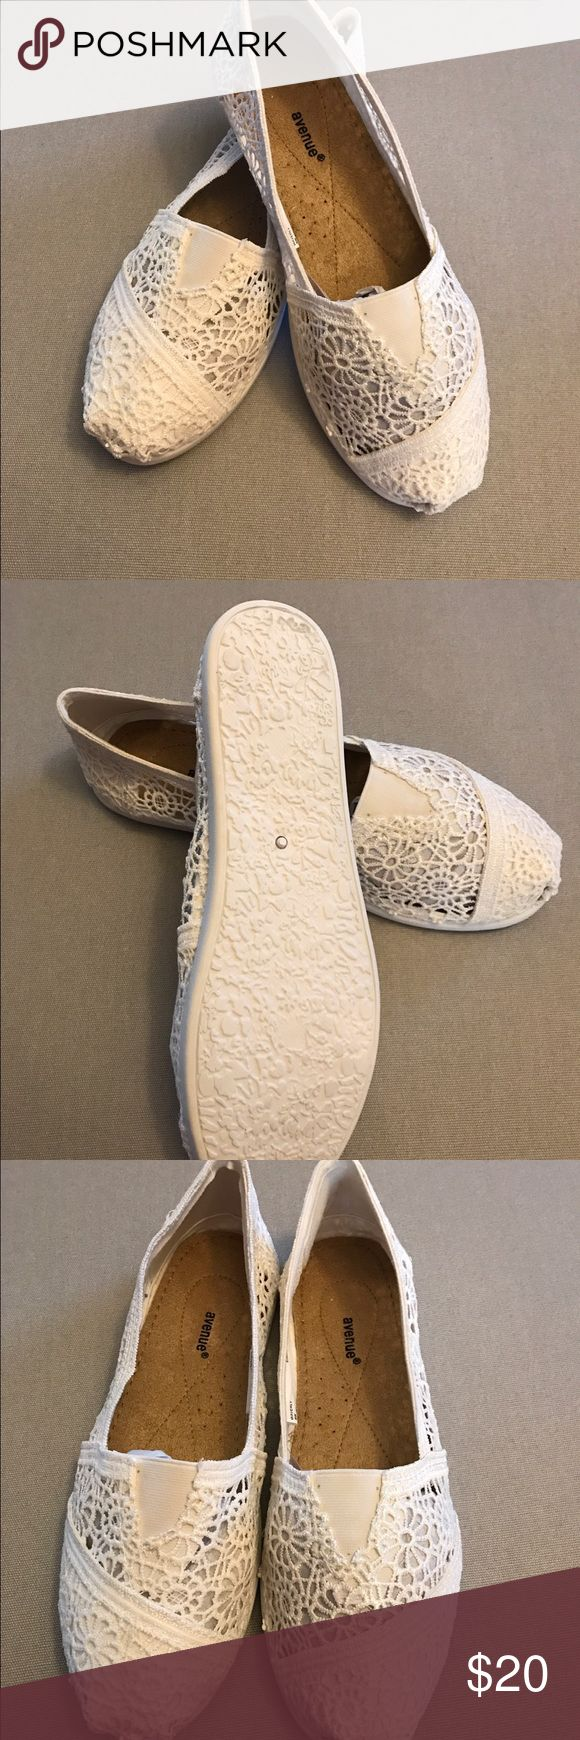 Canvas Crocheted Flats Brand New. Never Been Worn. Great Summer Shoes. White canvas, crocheted flat. Rubber sole makes them super comfy. Avenue Shoes Flats & Loafers